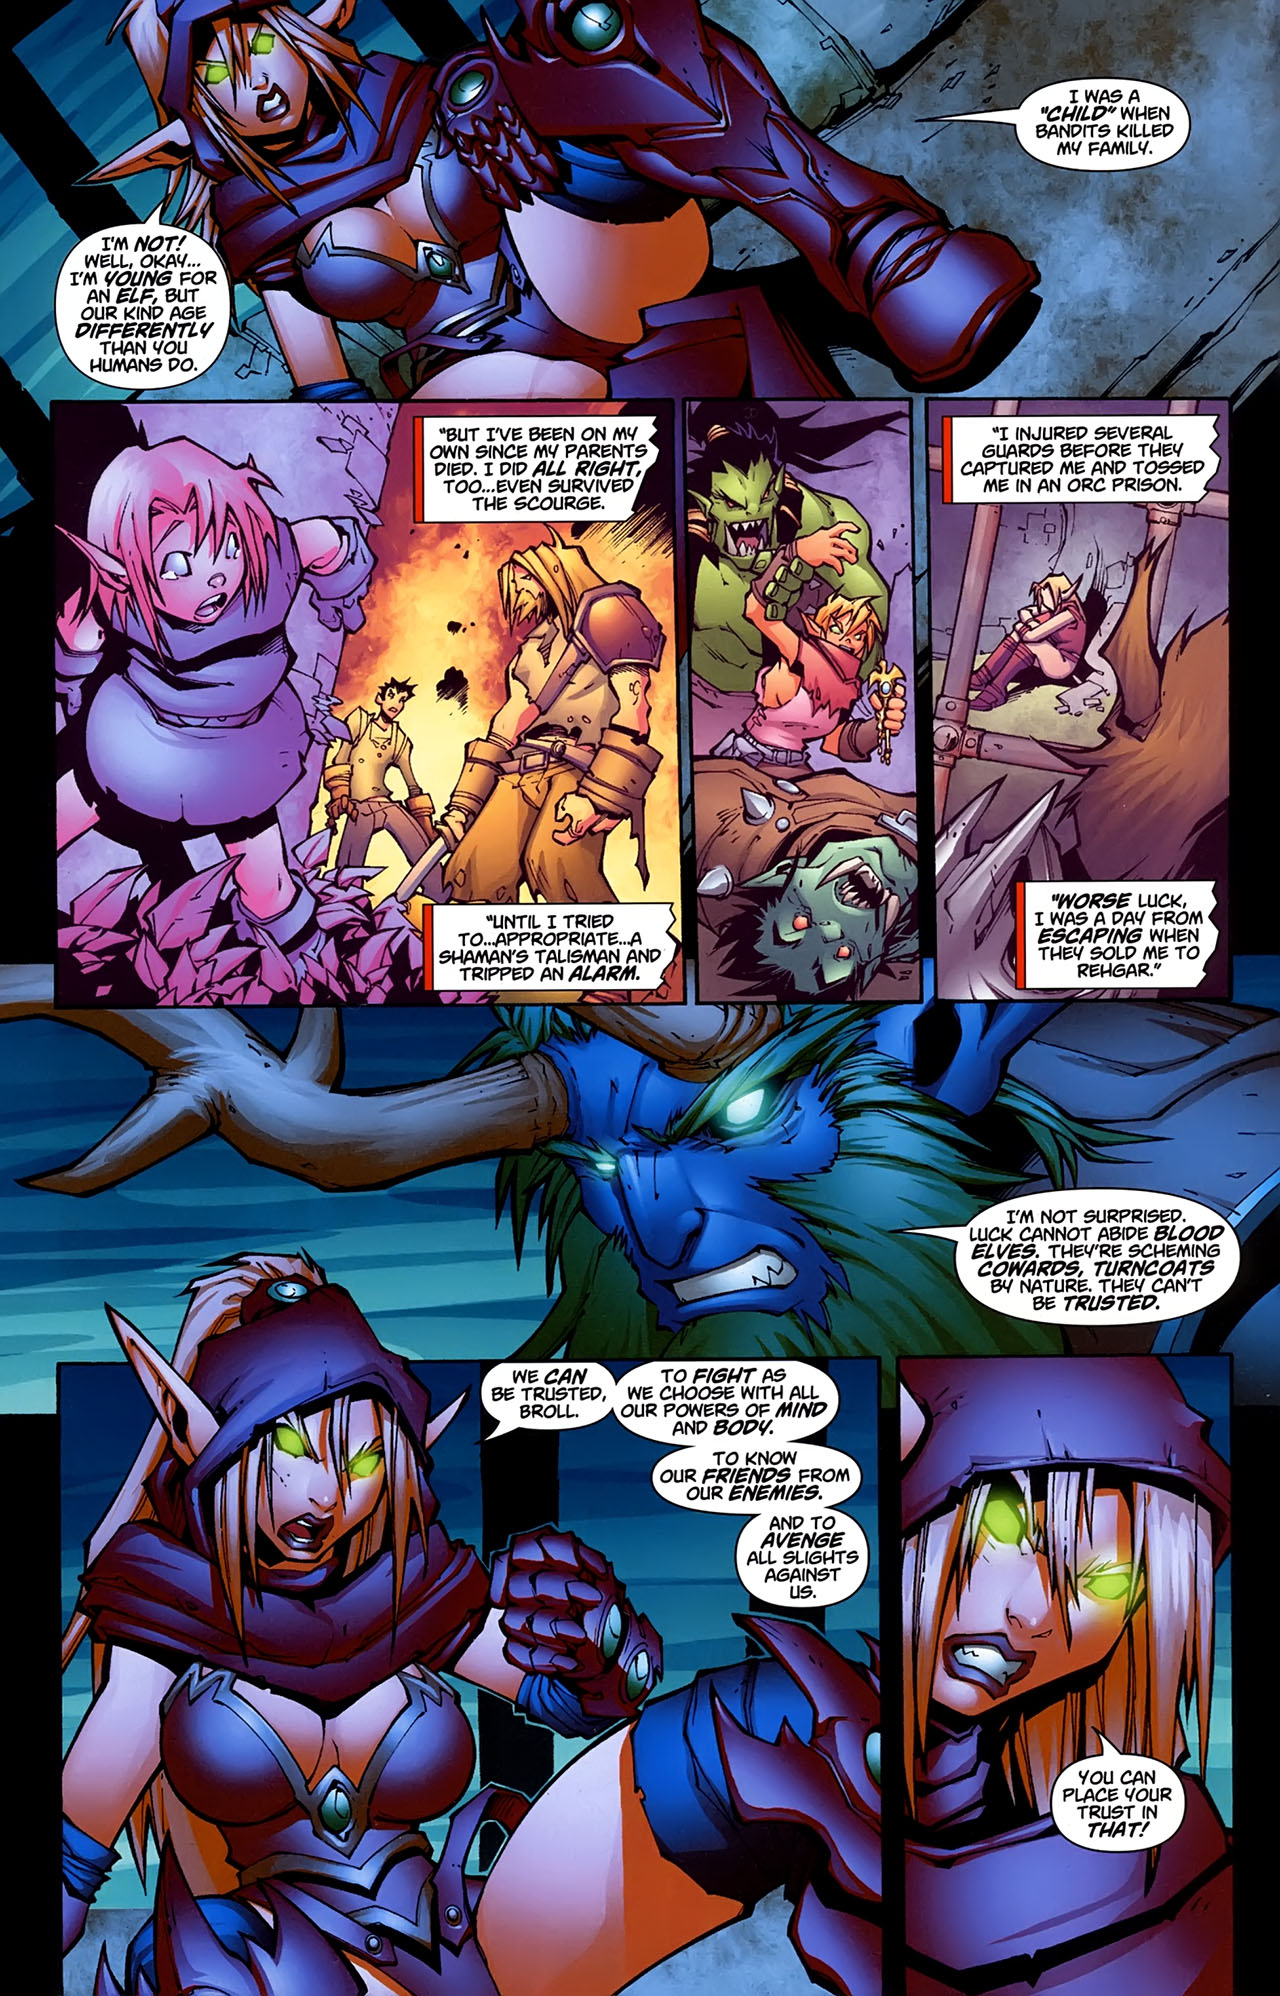 For Druid world of warcraft porn comics remarkable